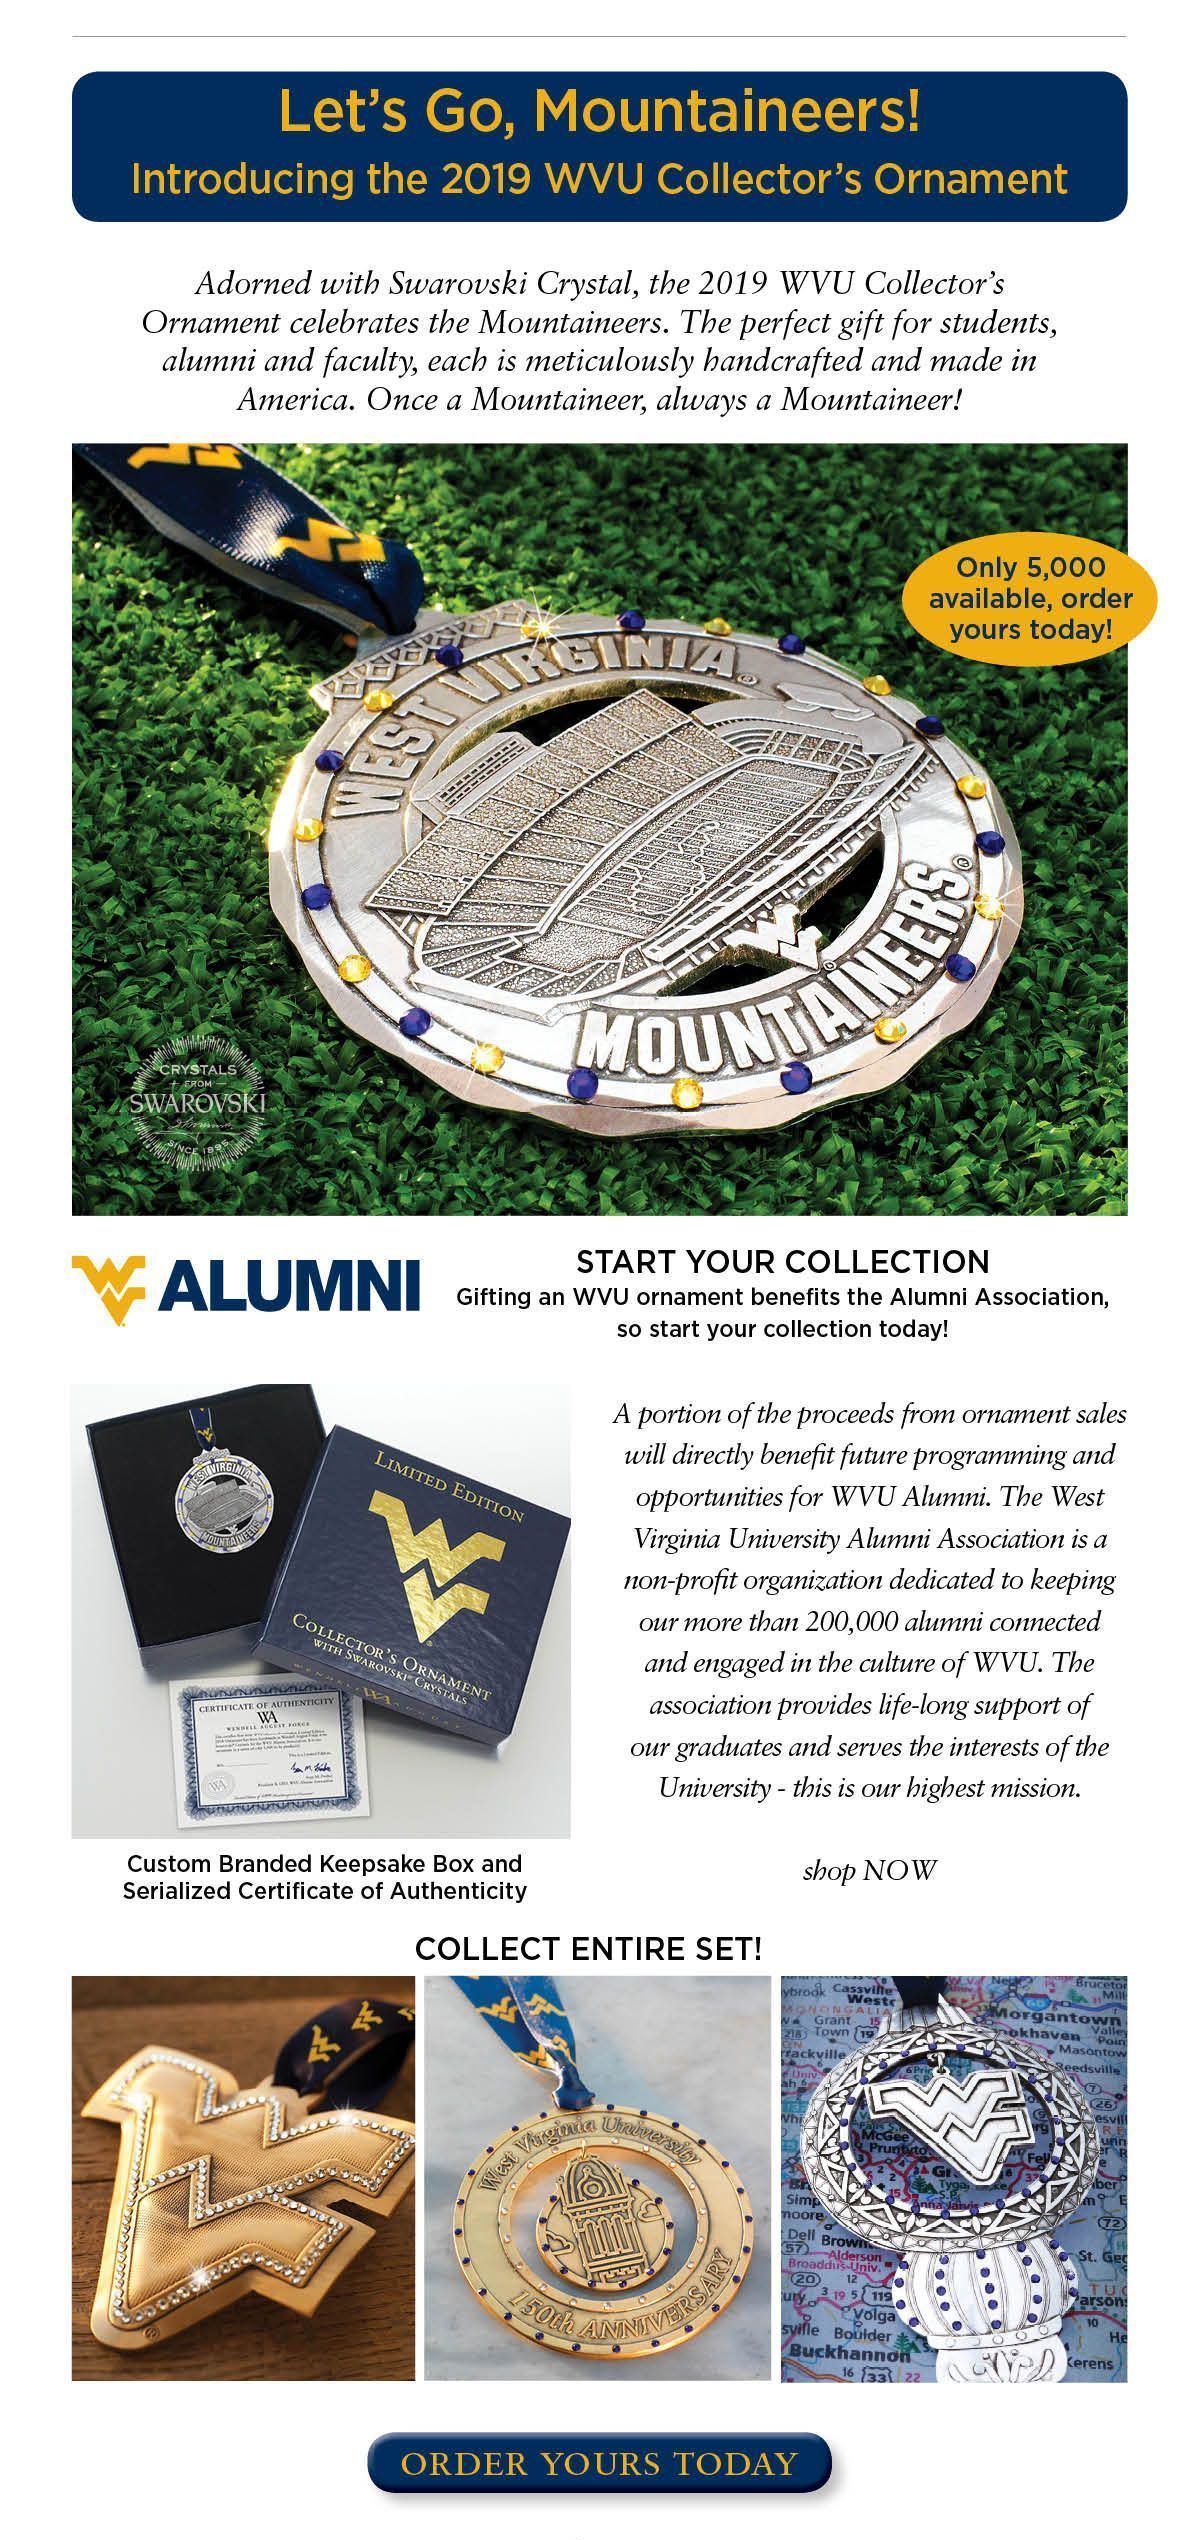 2019 WVU Mountaineers Collector's Ornament